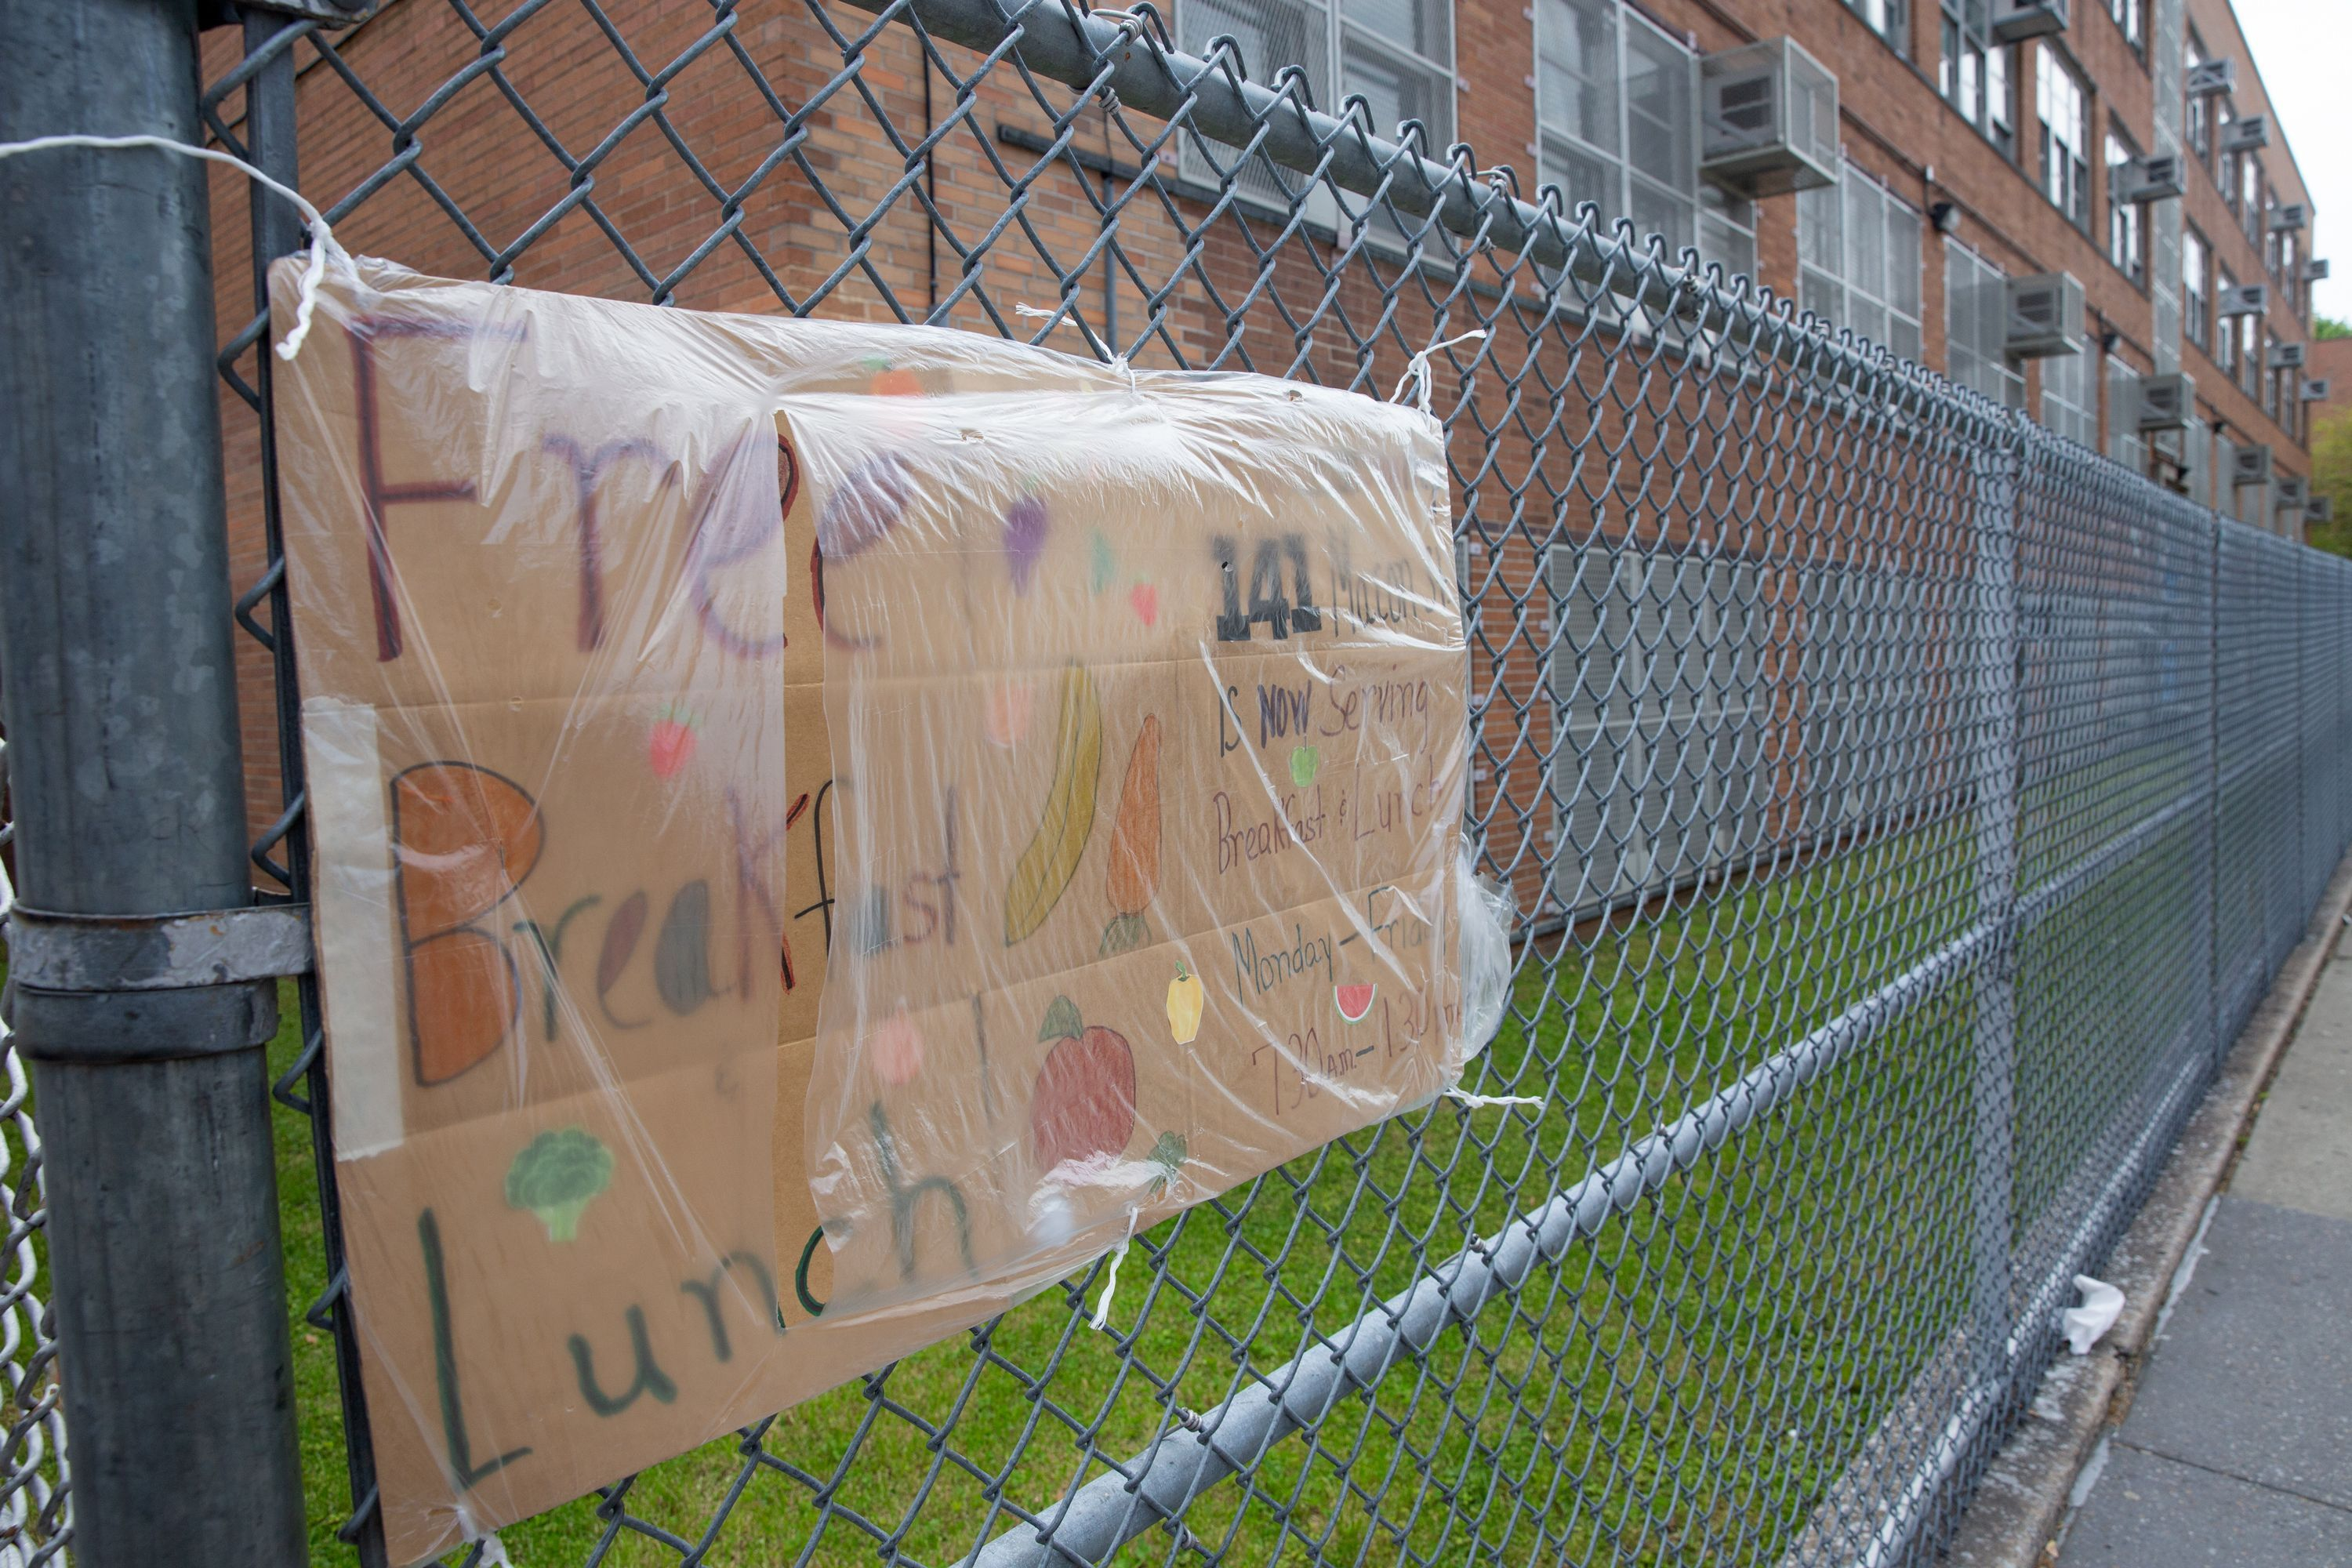 A public school in Bed-Stuy, Brooklyn was giving away free food during the coronavirus outbreak.